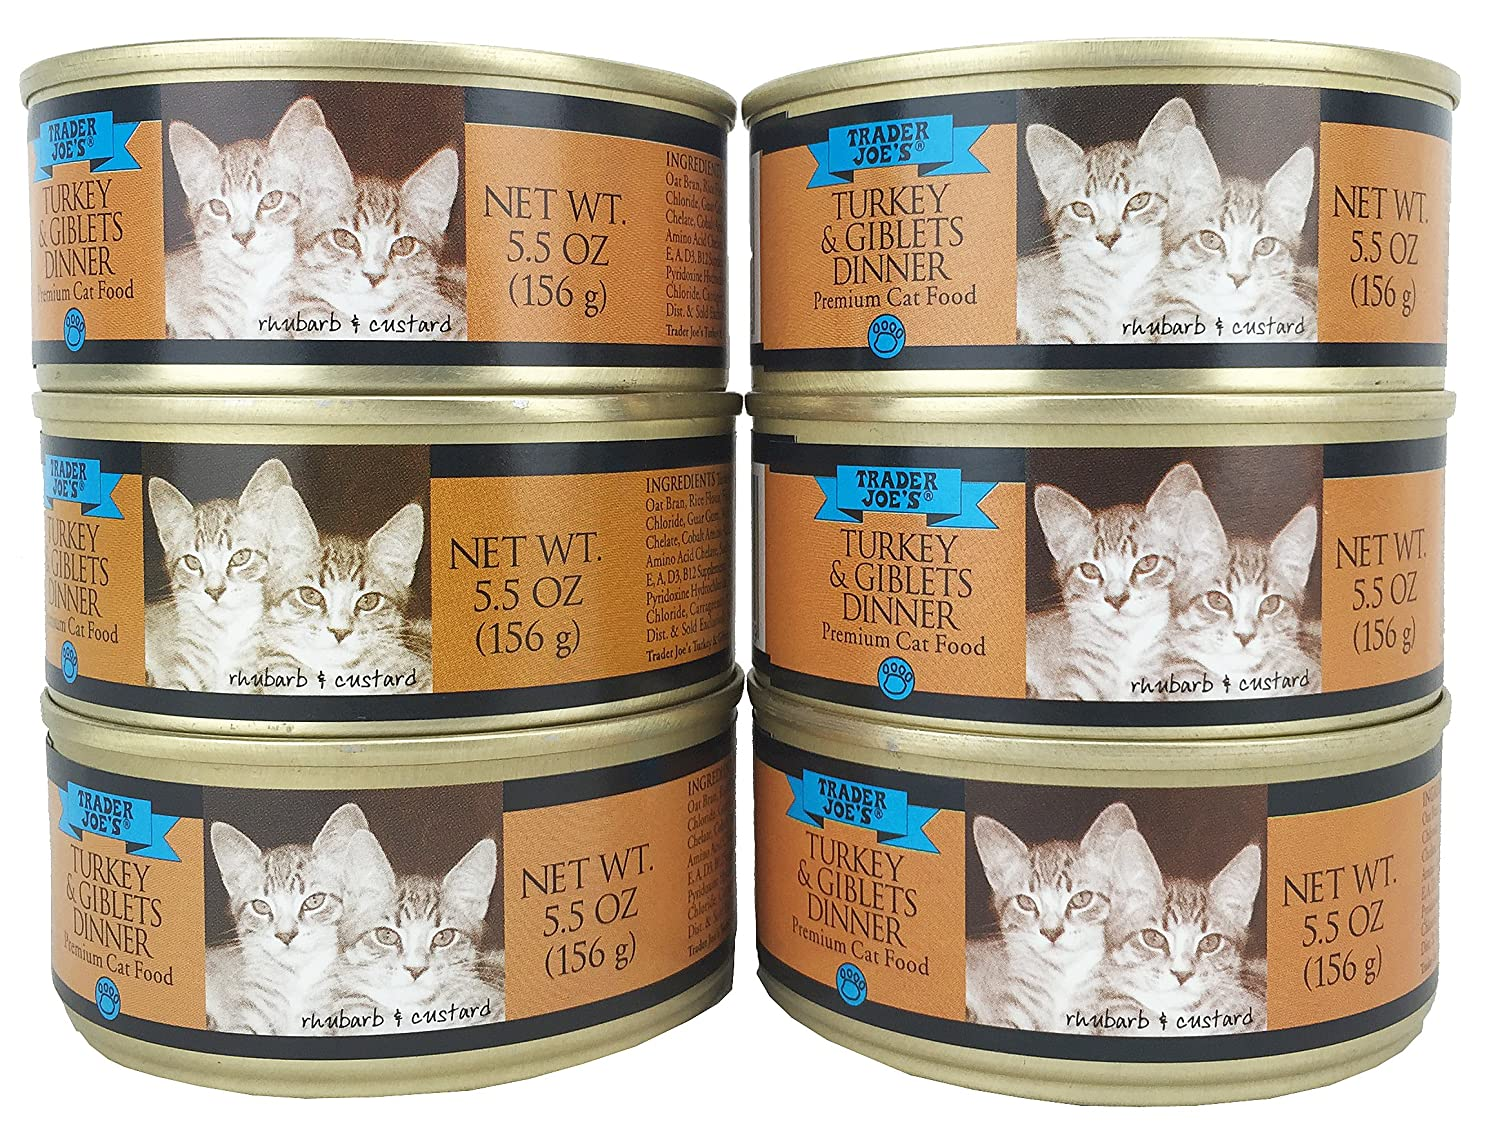 Advantages of Trader Joe's cat food